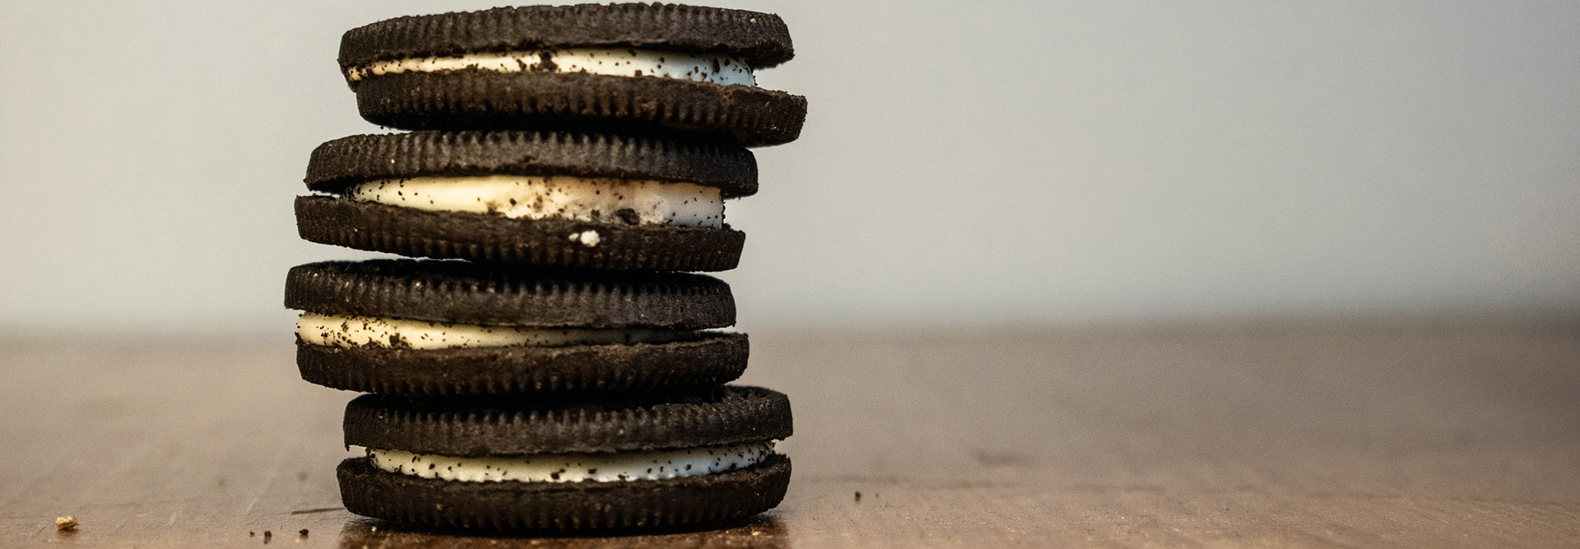 Fast food, snacks and treats that are surprisingly vegan